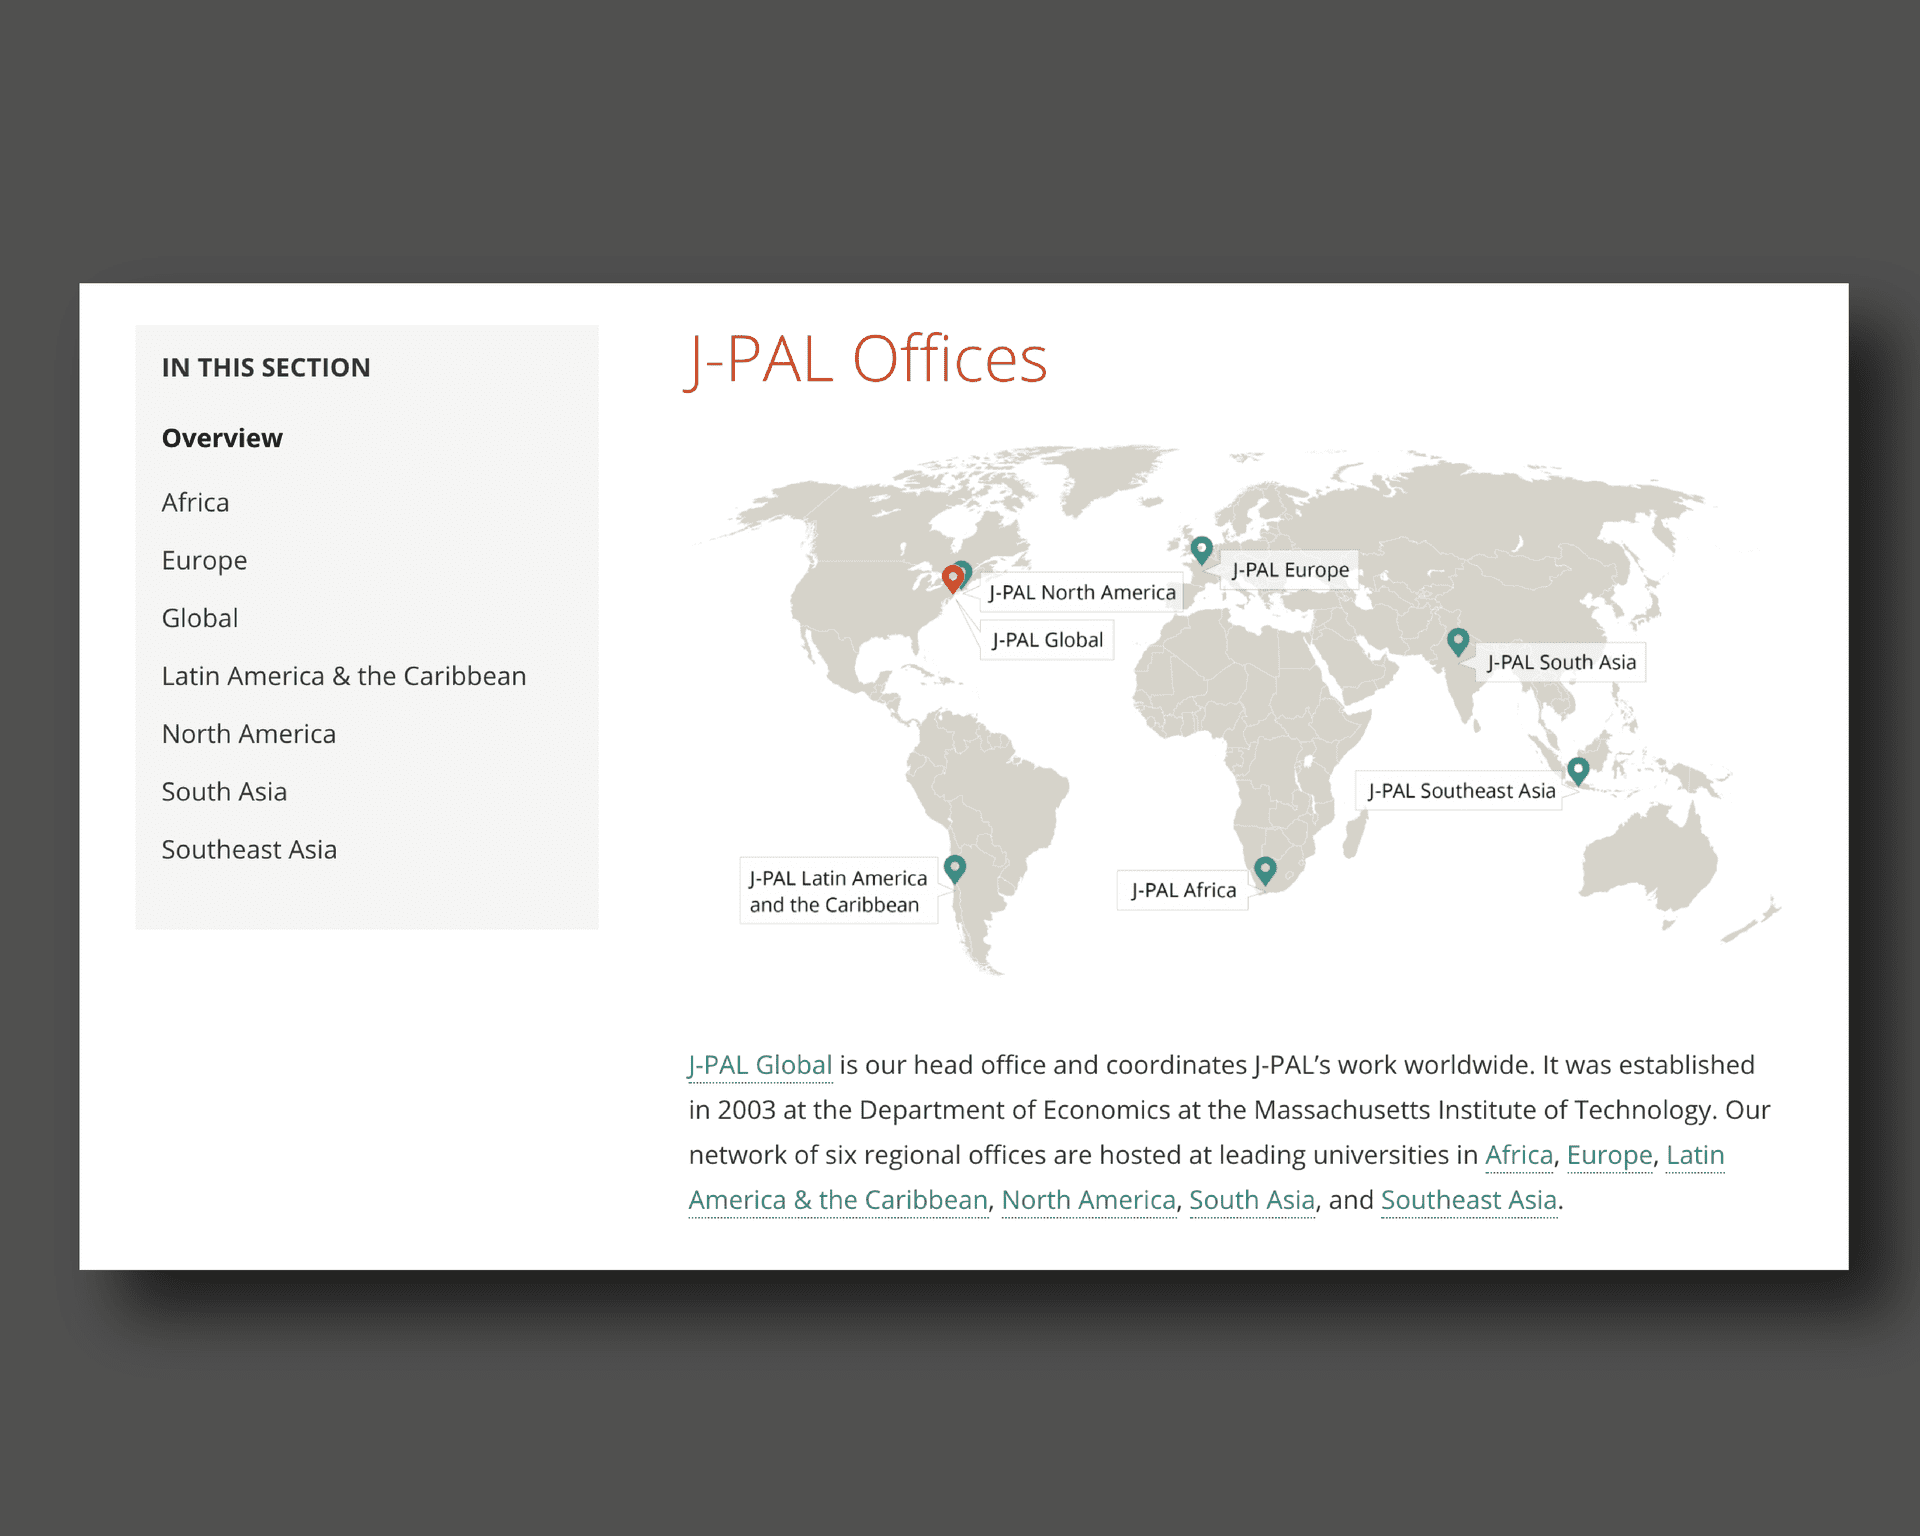 Searchable map of J-PAL global offices